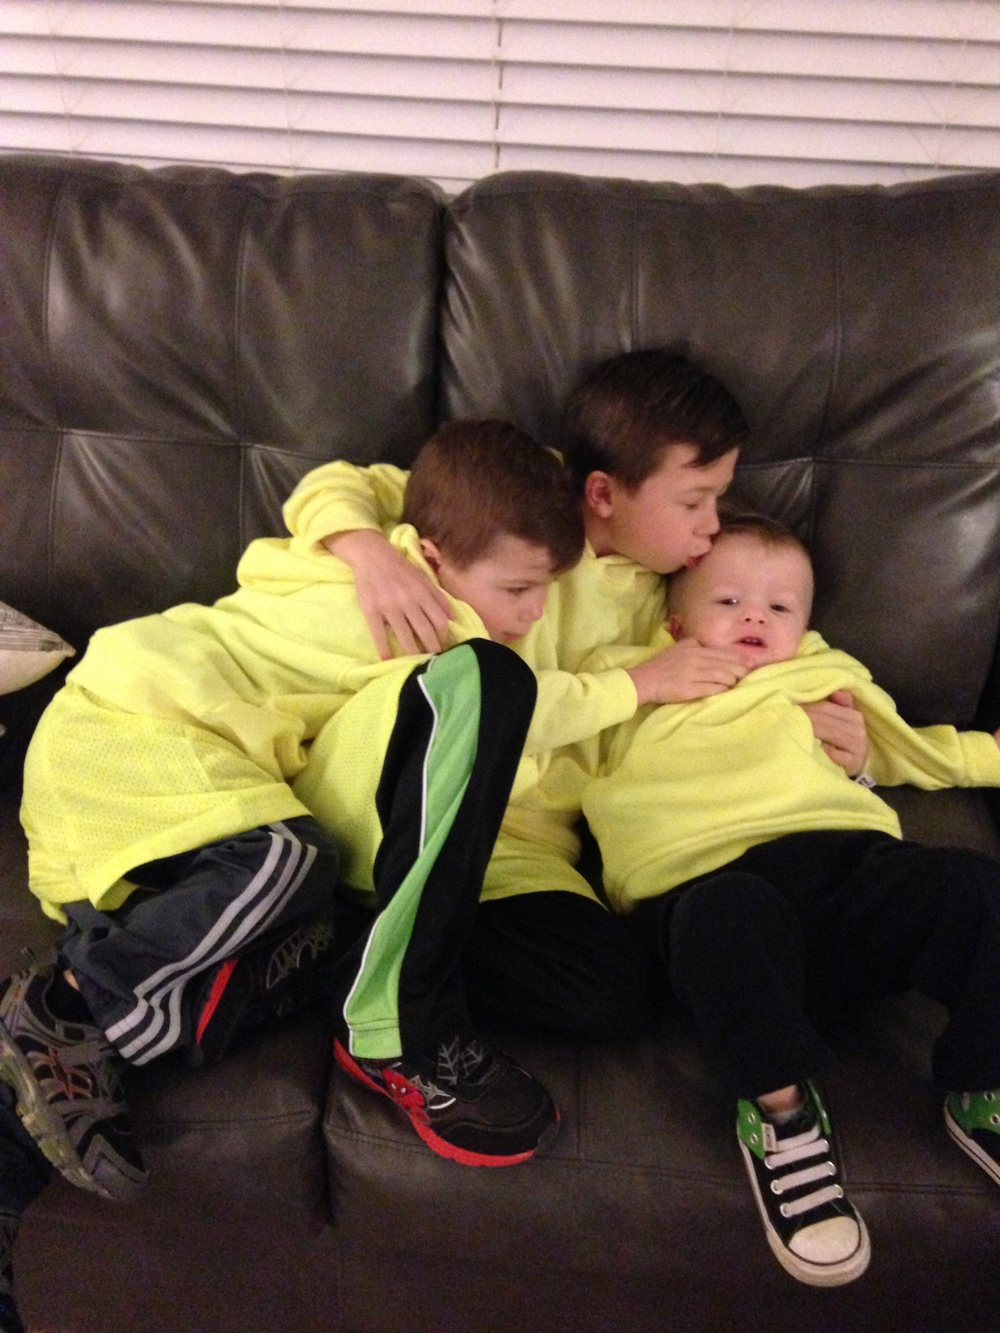 The big boys trying to comfort Everett as he cries. He wasn't in the mood for the matching sweatshirt pic.